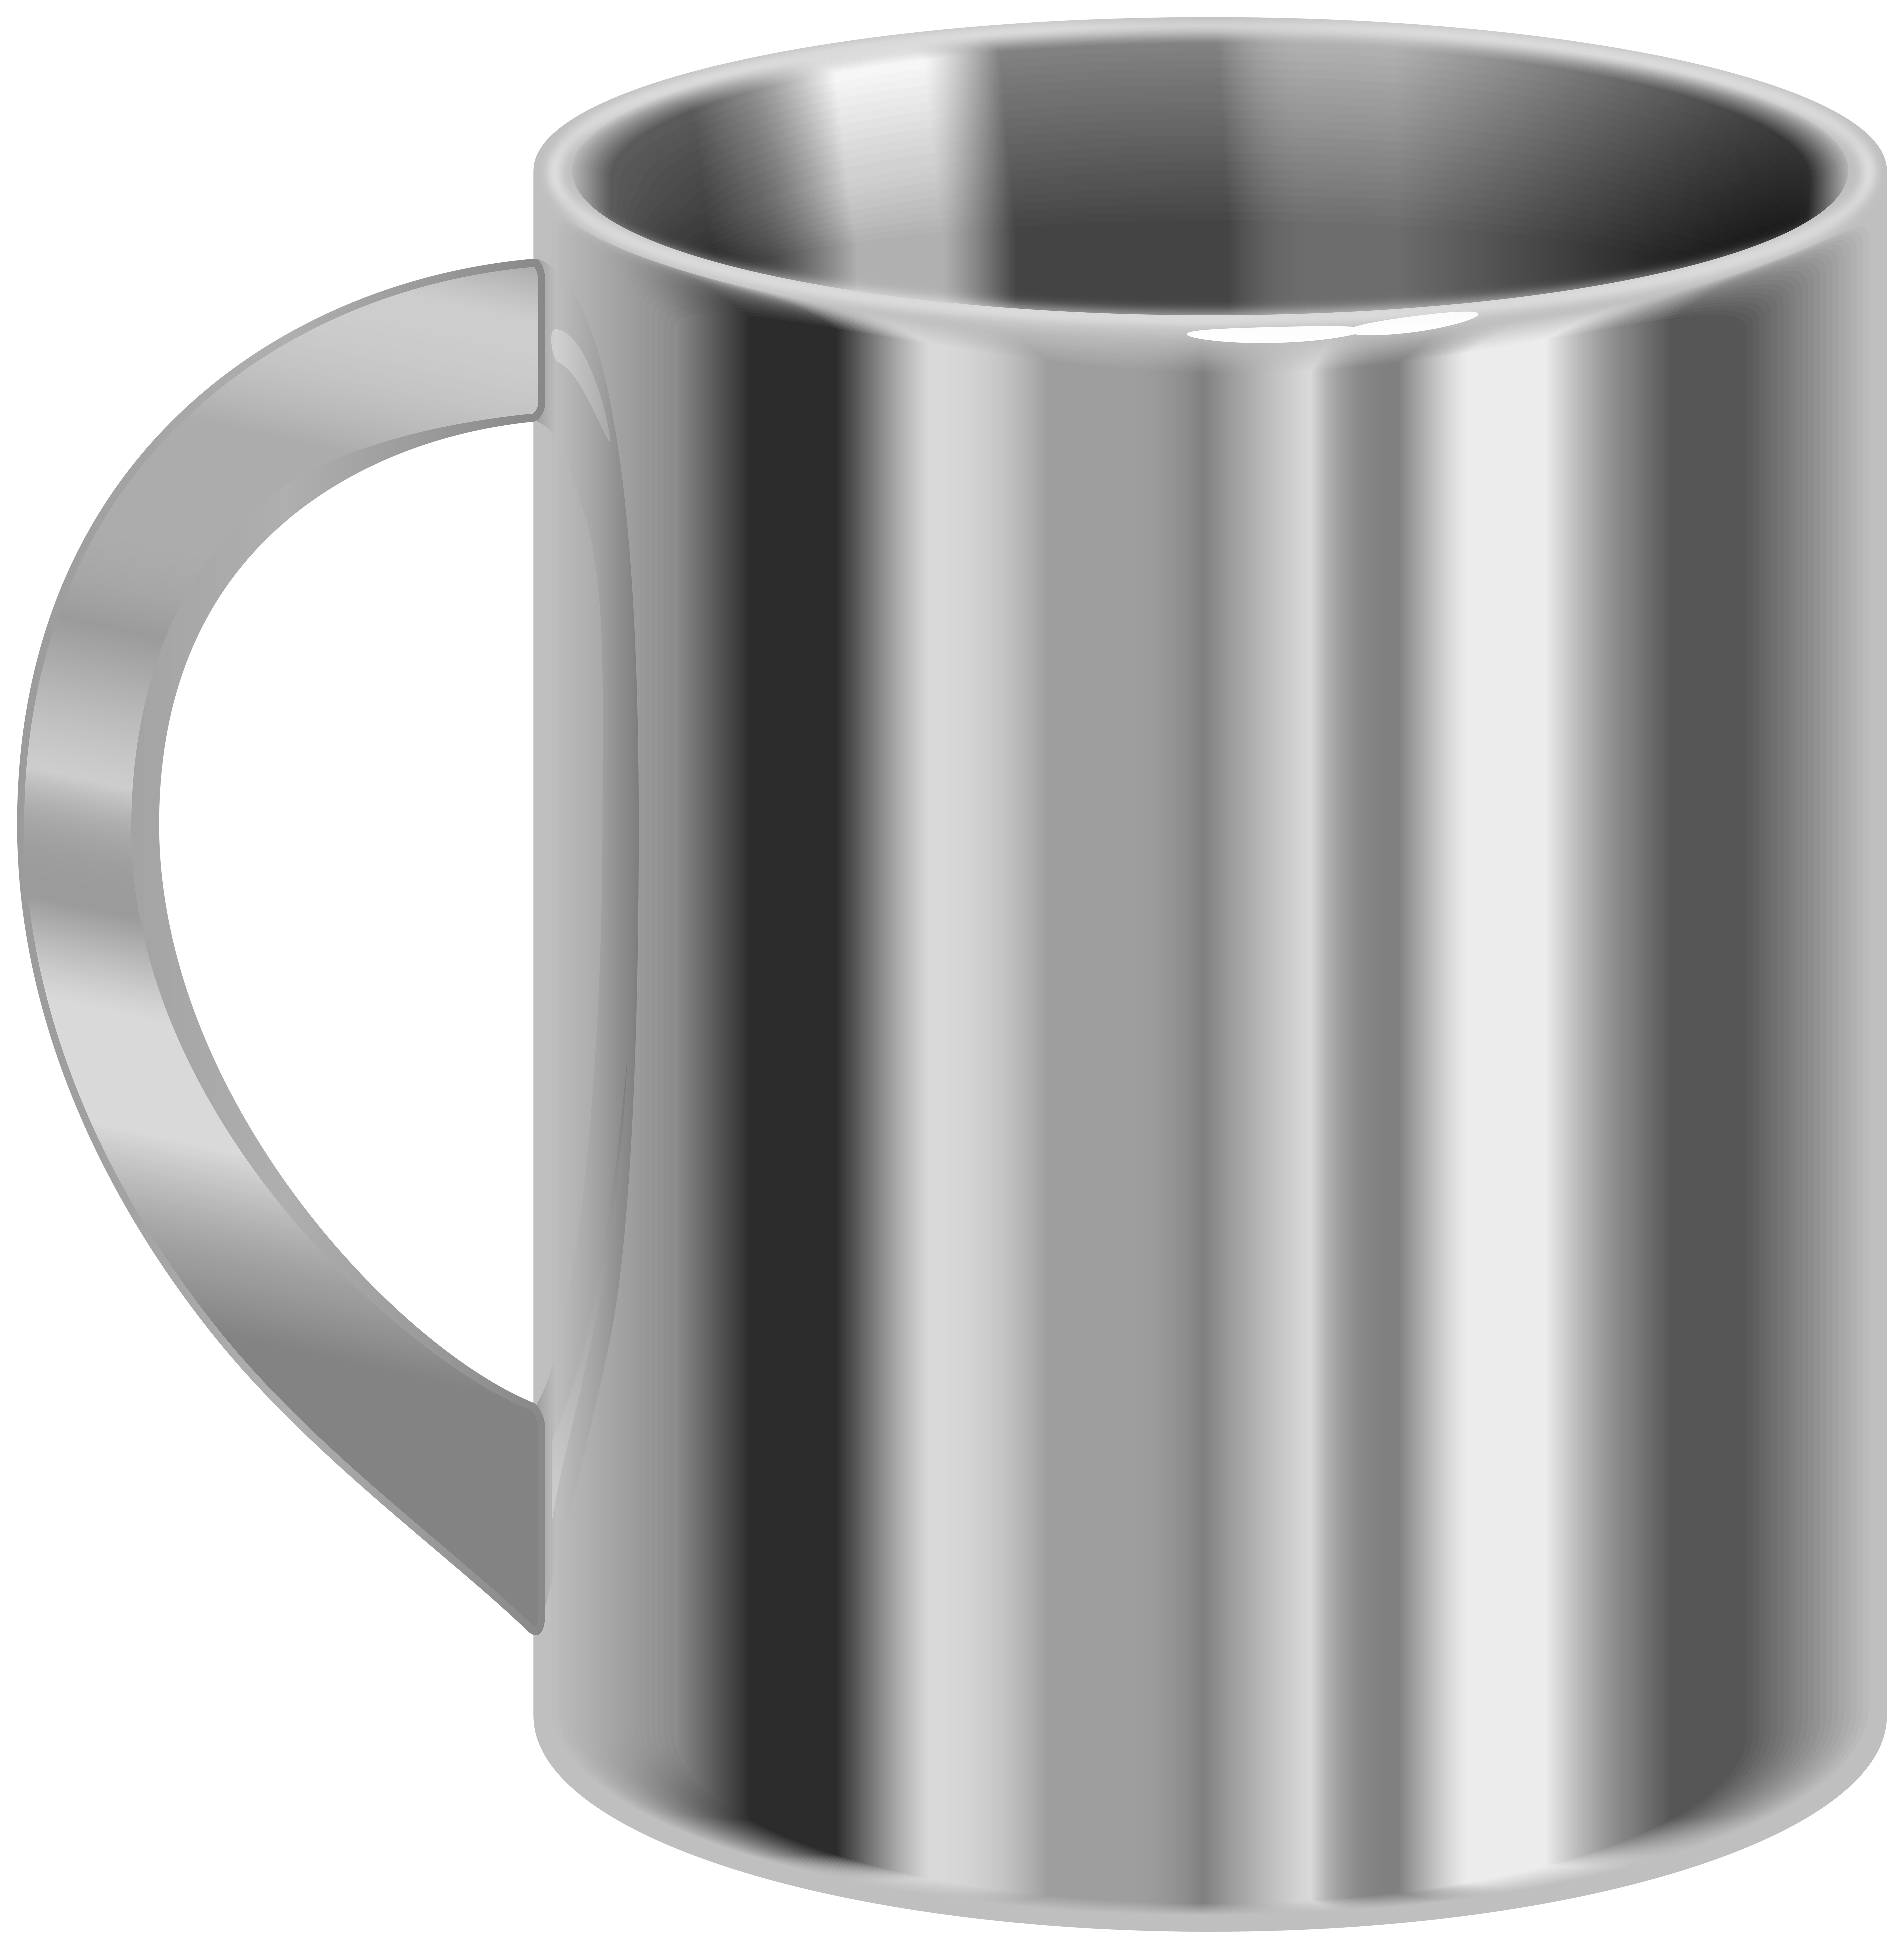 Stainless Steel Mug PNG Clip Art.